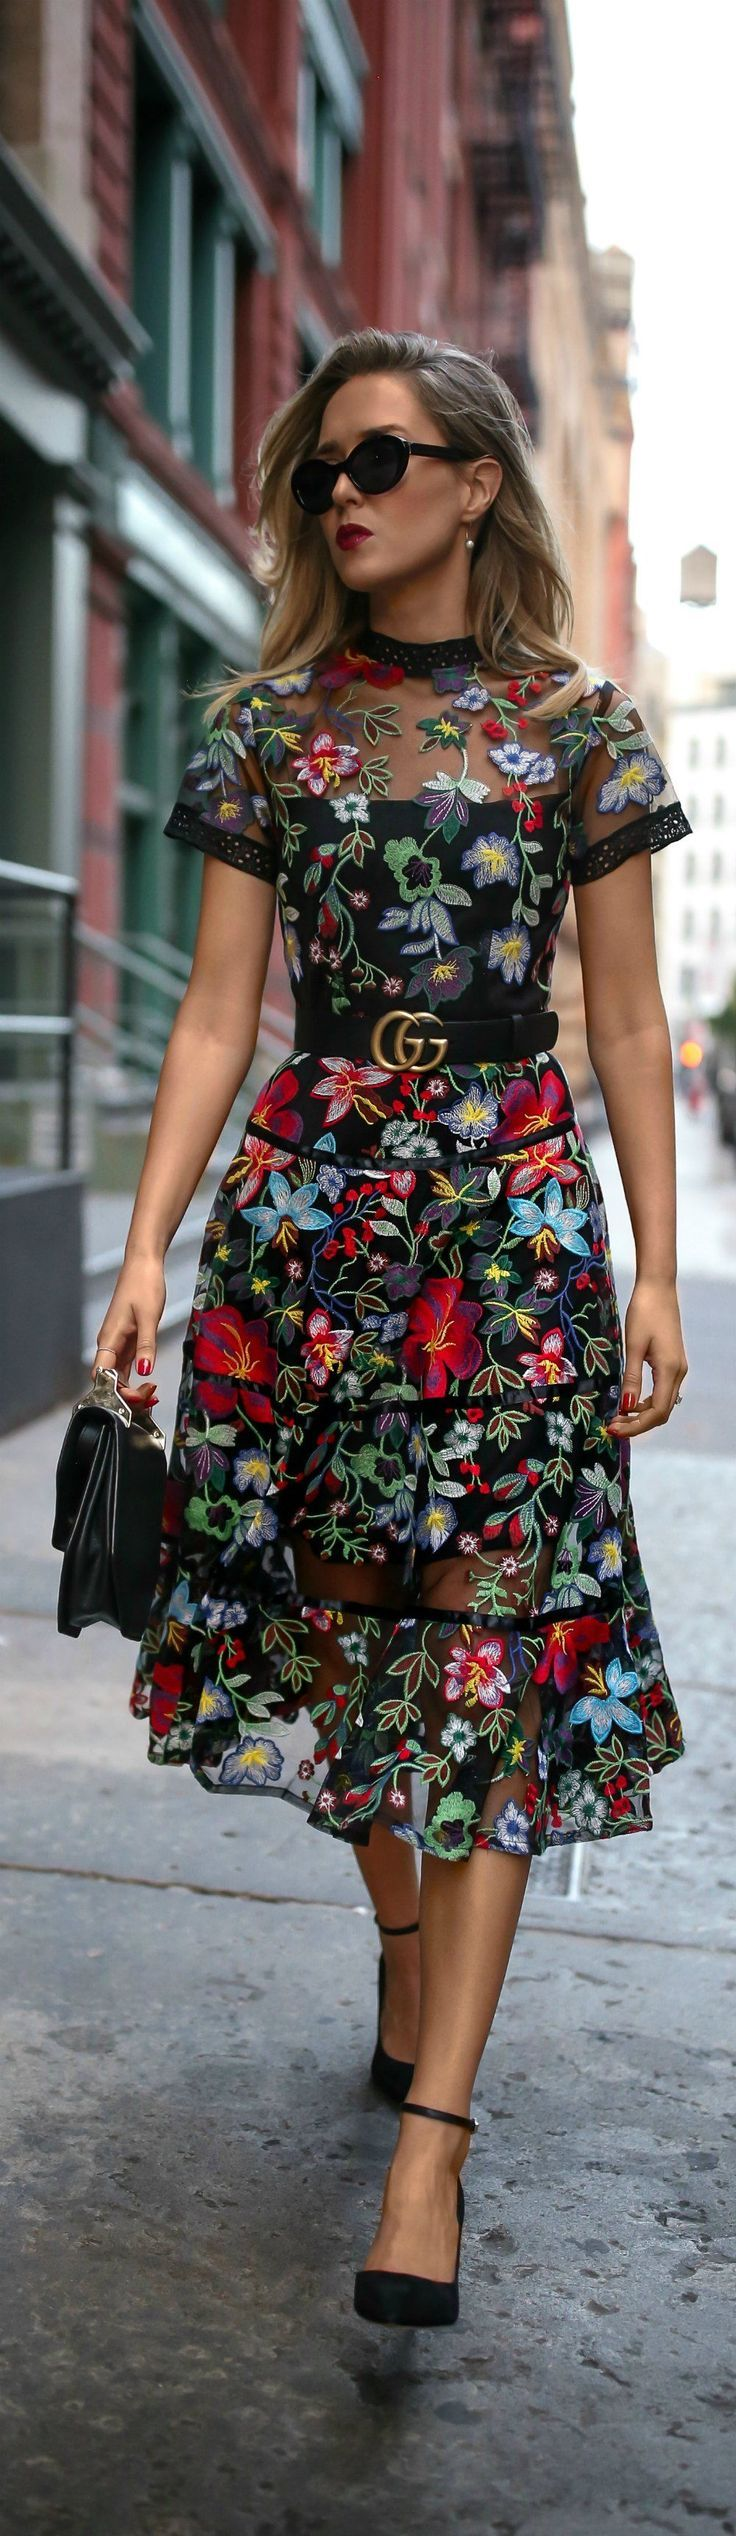 Trend Memo Day 6: Fall Florals // Floral embroidered midi dress, leather waist belt, ankle strap pumps, mini shoulder bag, cat eye sunglasses, pearl drop earrings Anthropologie, Gucci, Sam Edelman, Marc Jacobs